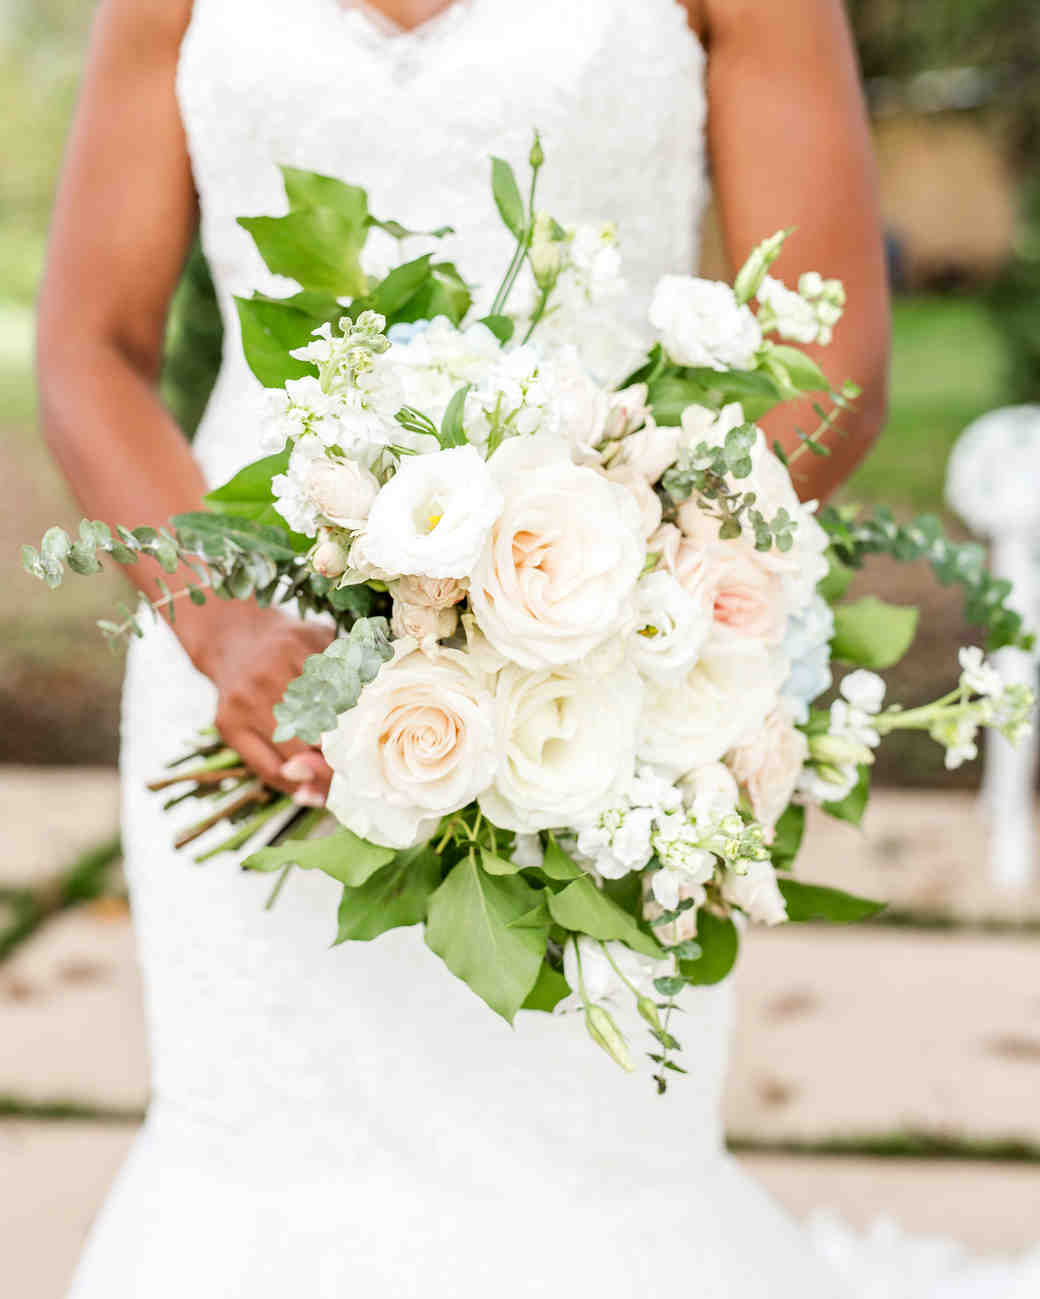 kenisha wendall wedding bride bouquet flowers white